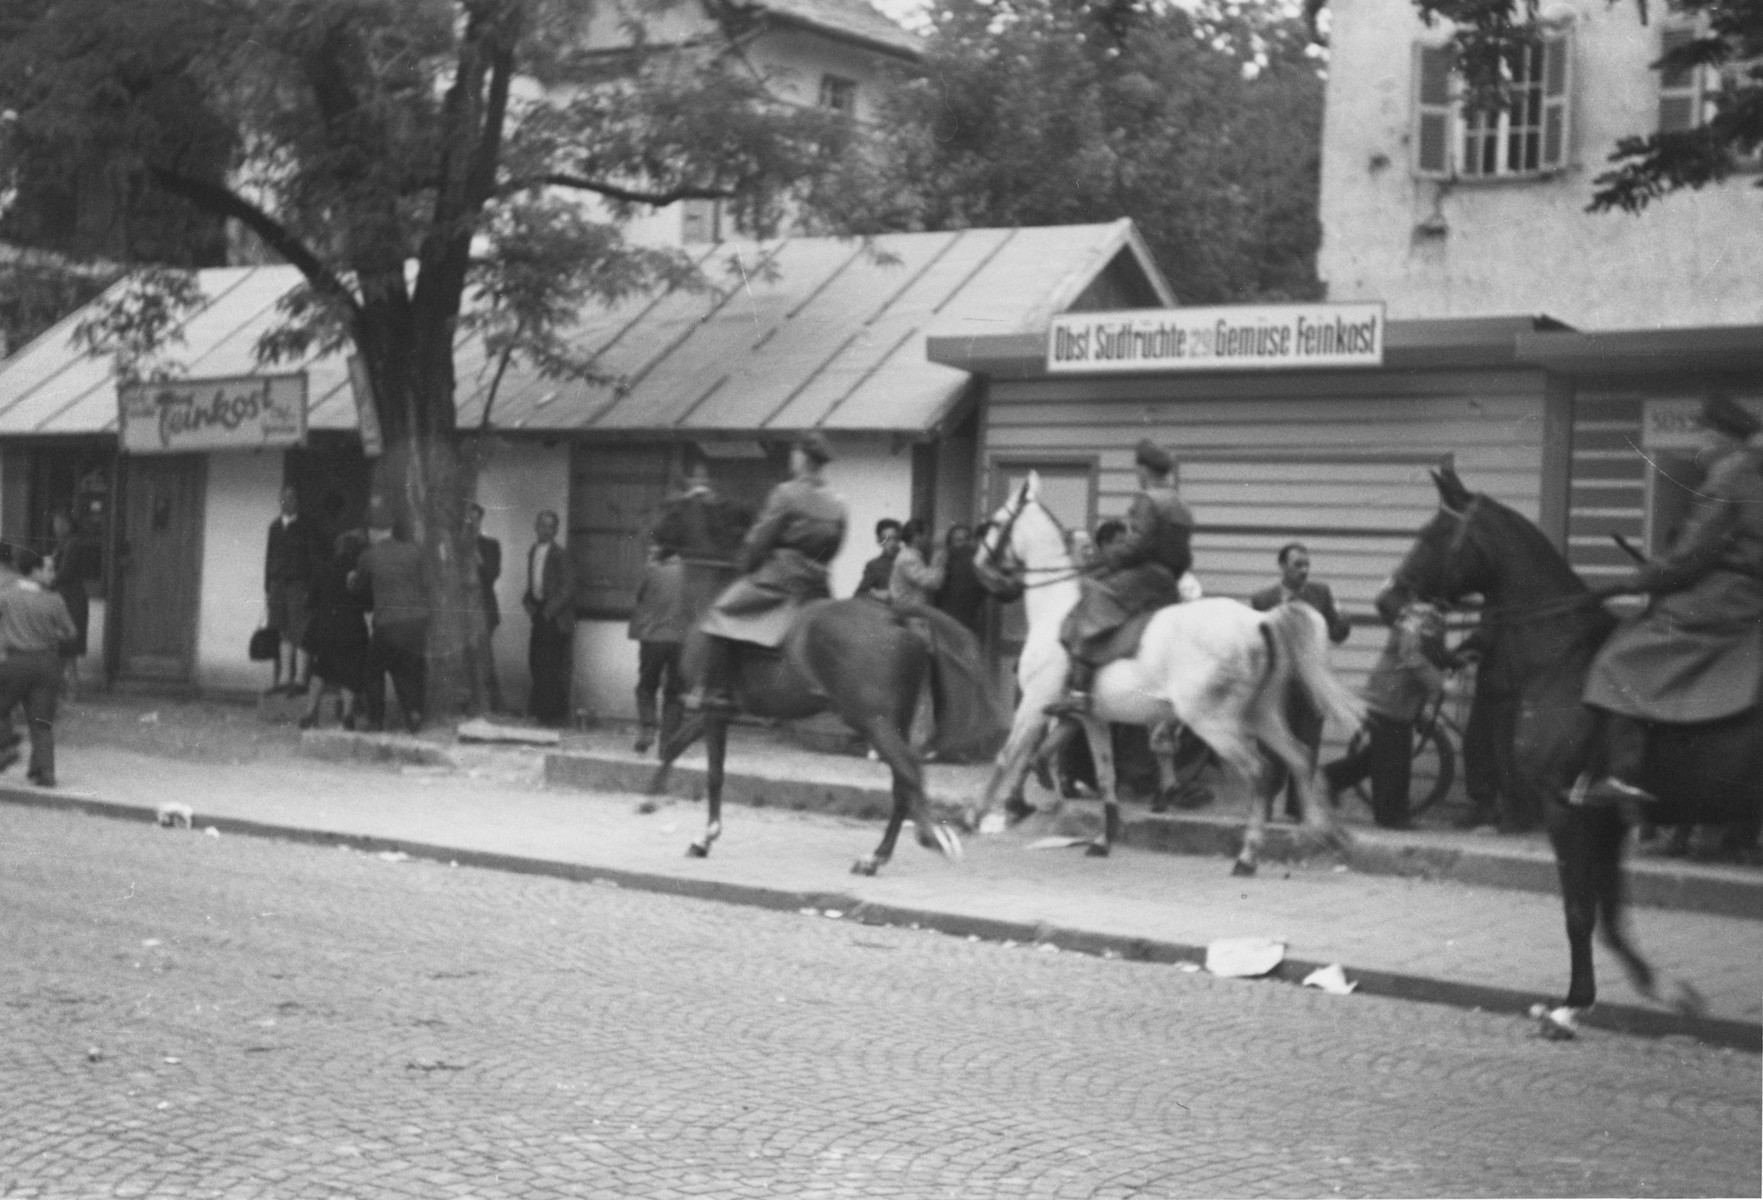 German police on horseback conduct a raid to suppress Jewish black market activity on the Moehlstrasse in Munich.